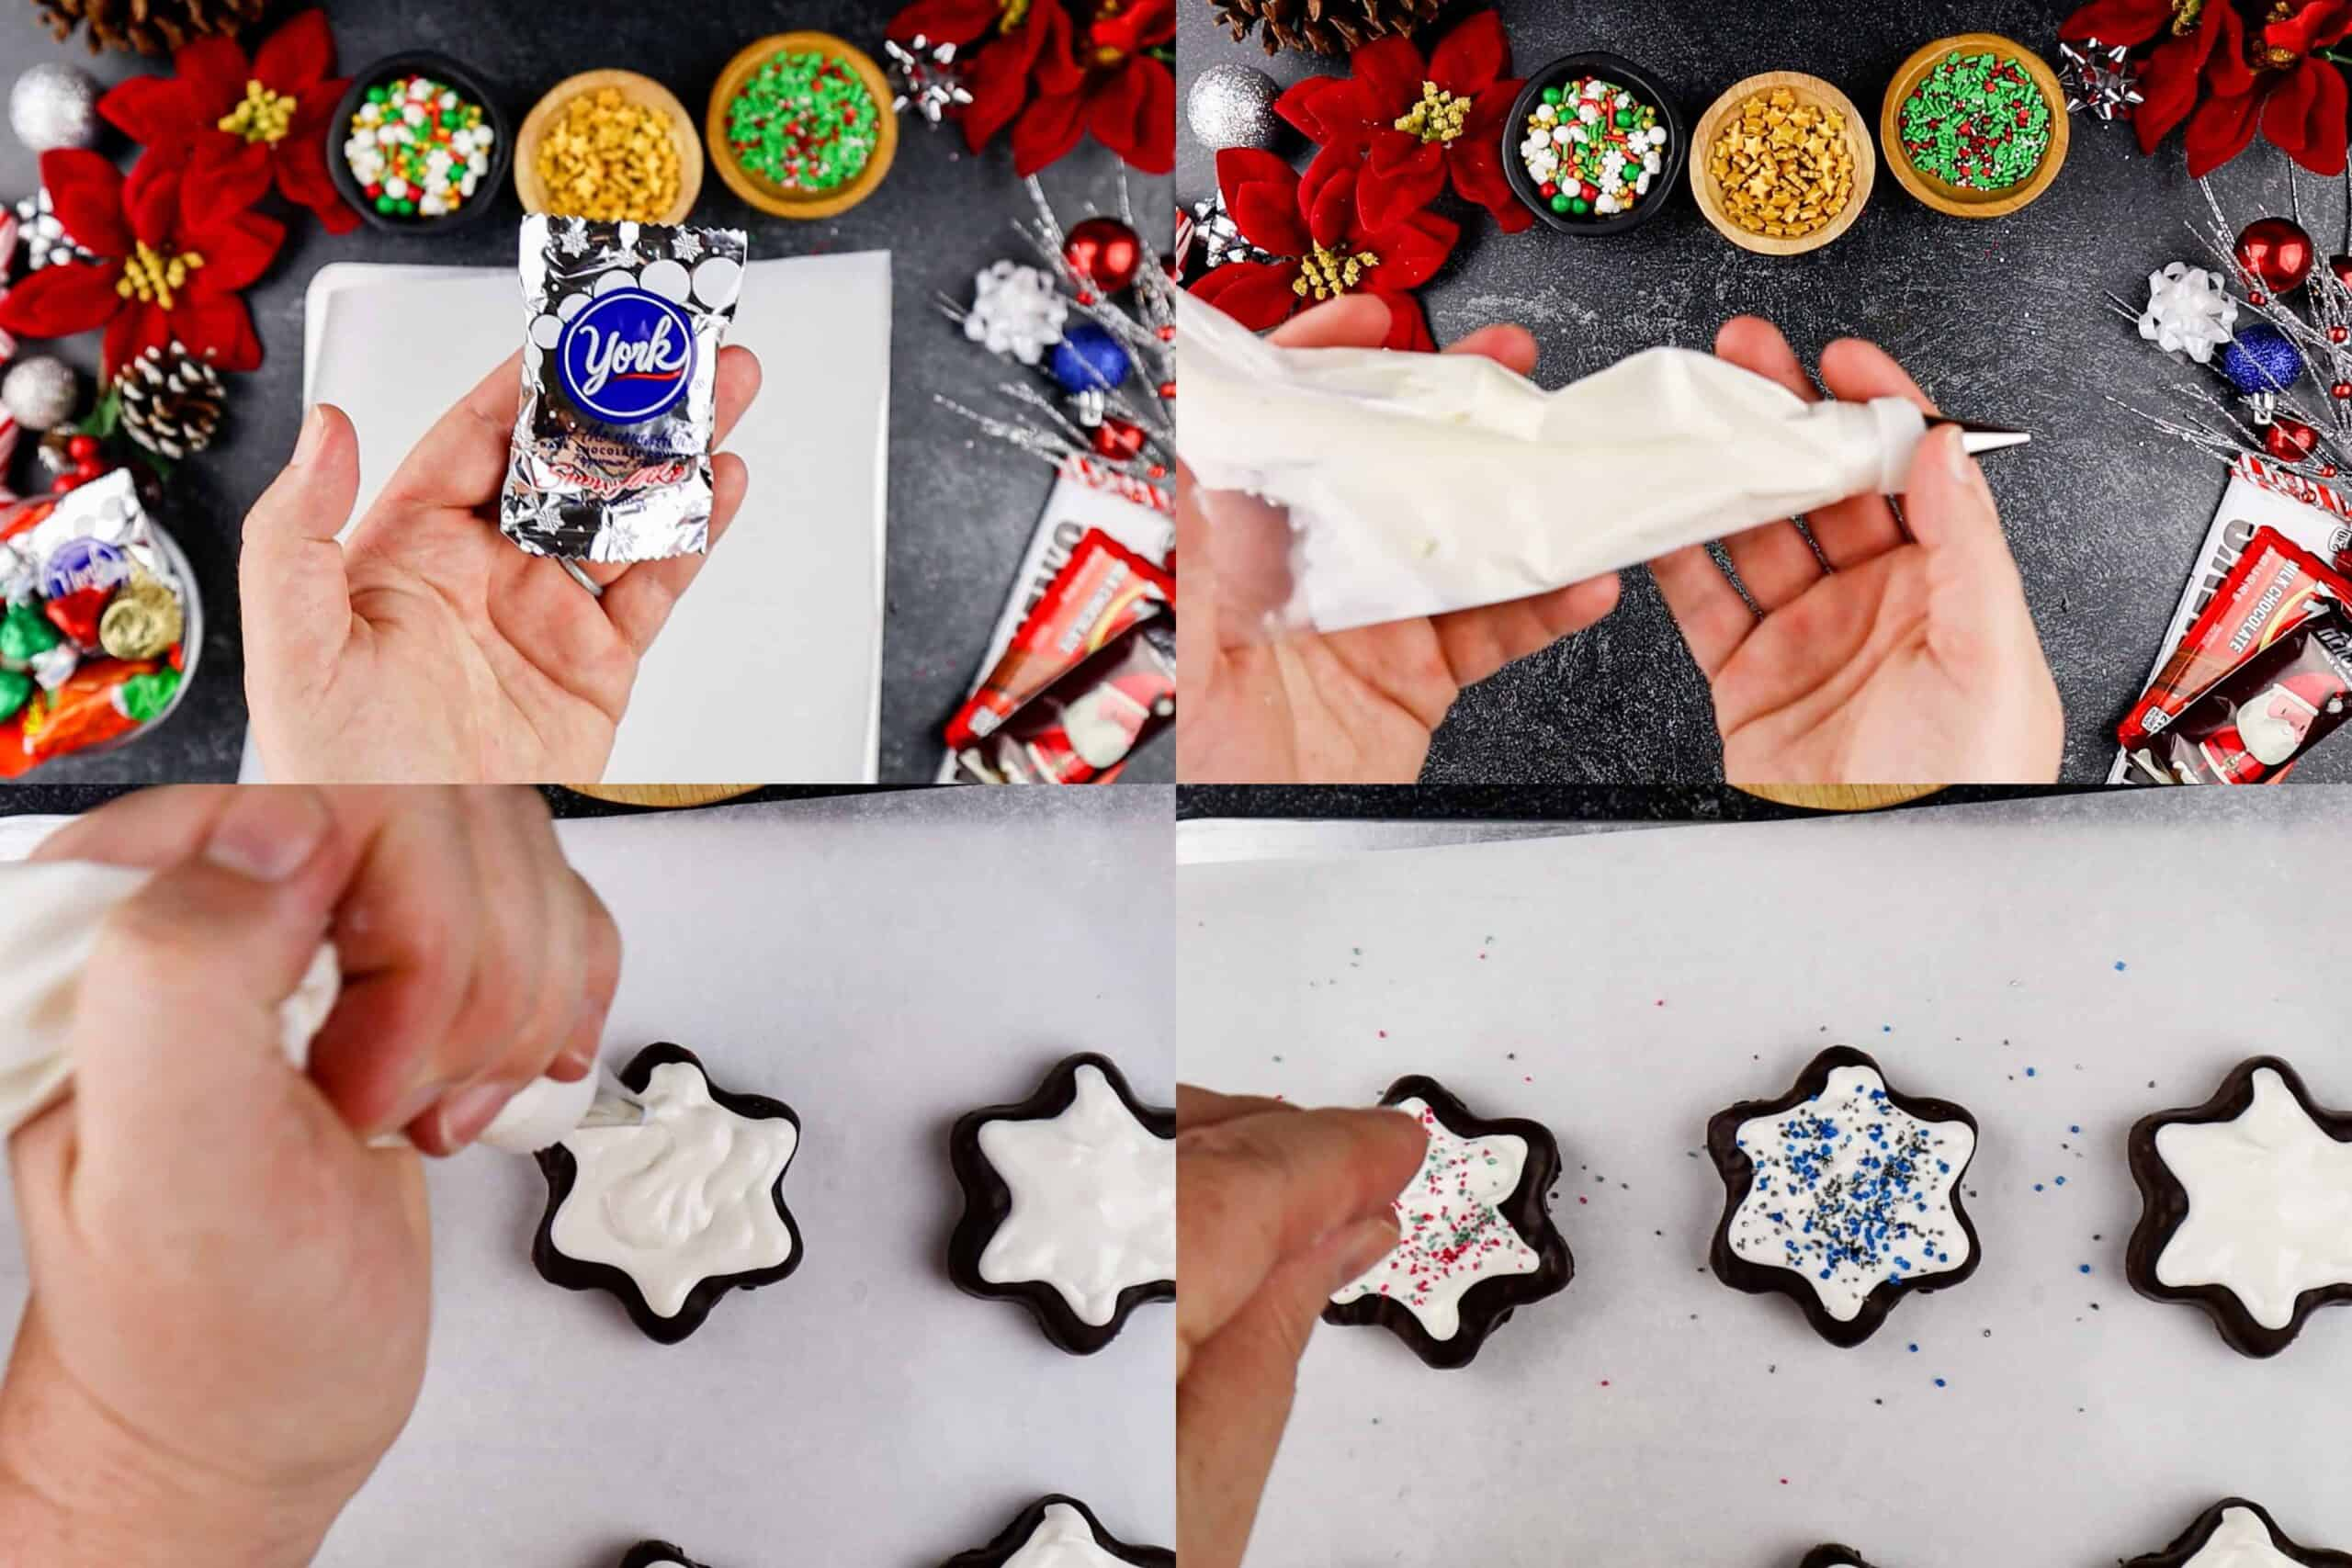 decorating the snowflakes process shots